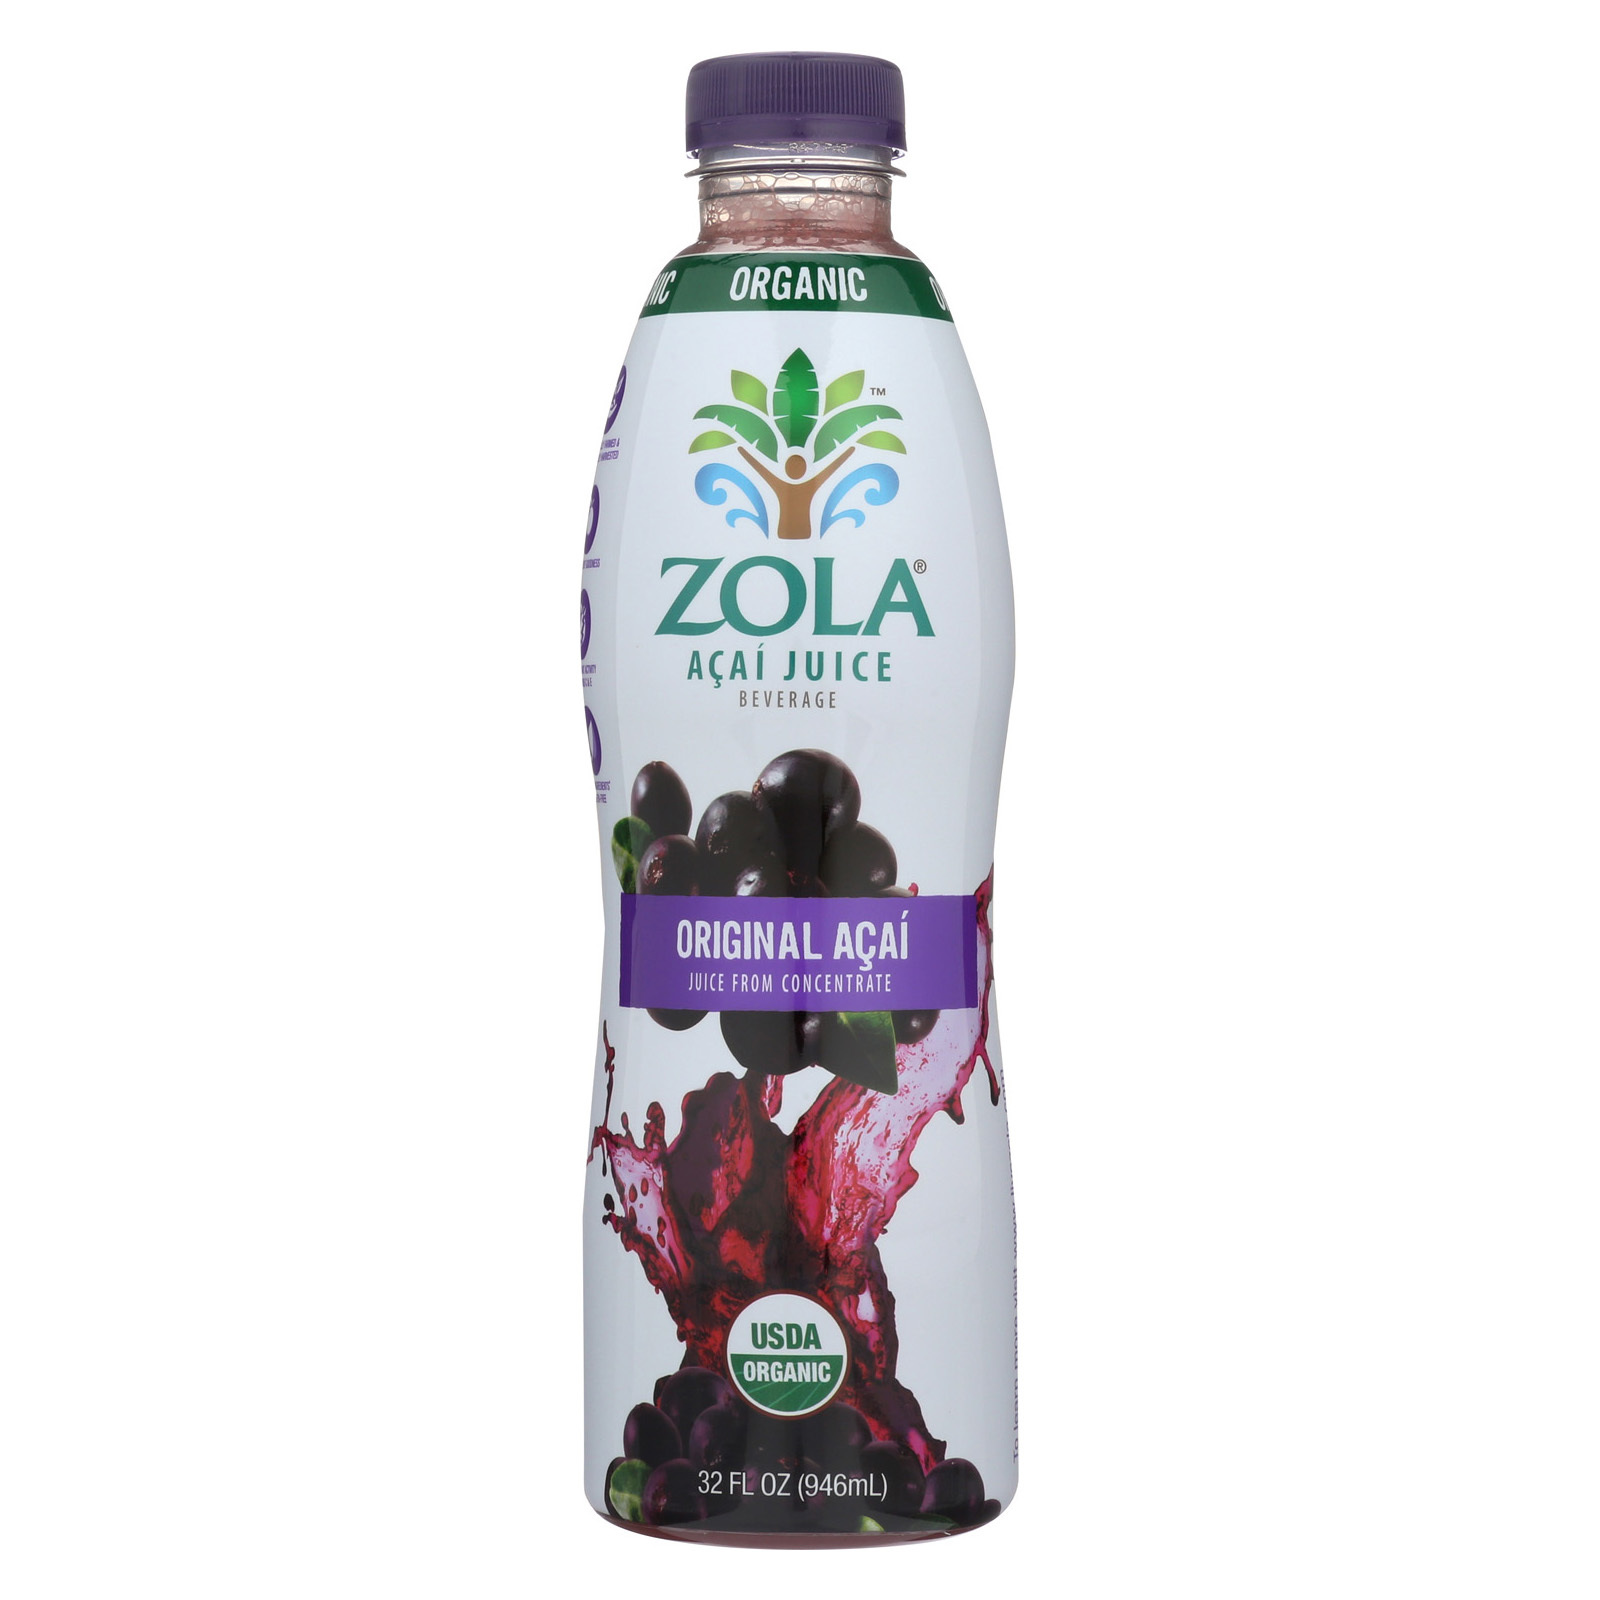 Zola Acai Juice - Antioxidant and Energy - Case of 8 - 32 Fl oz.